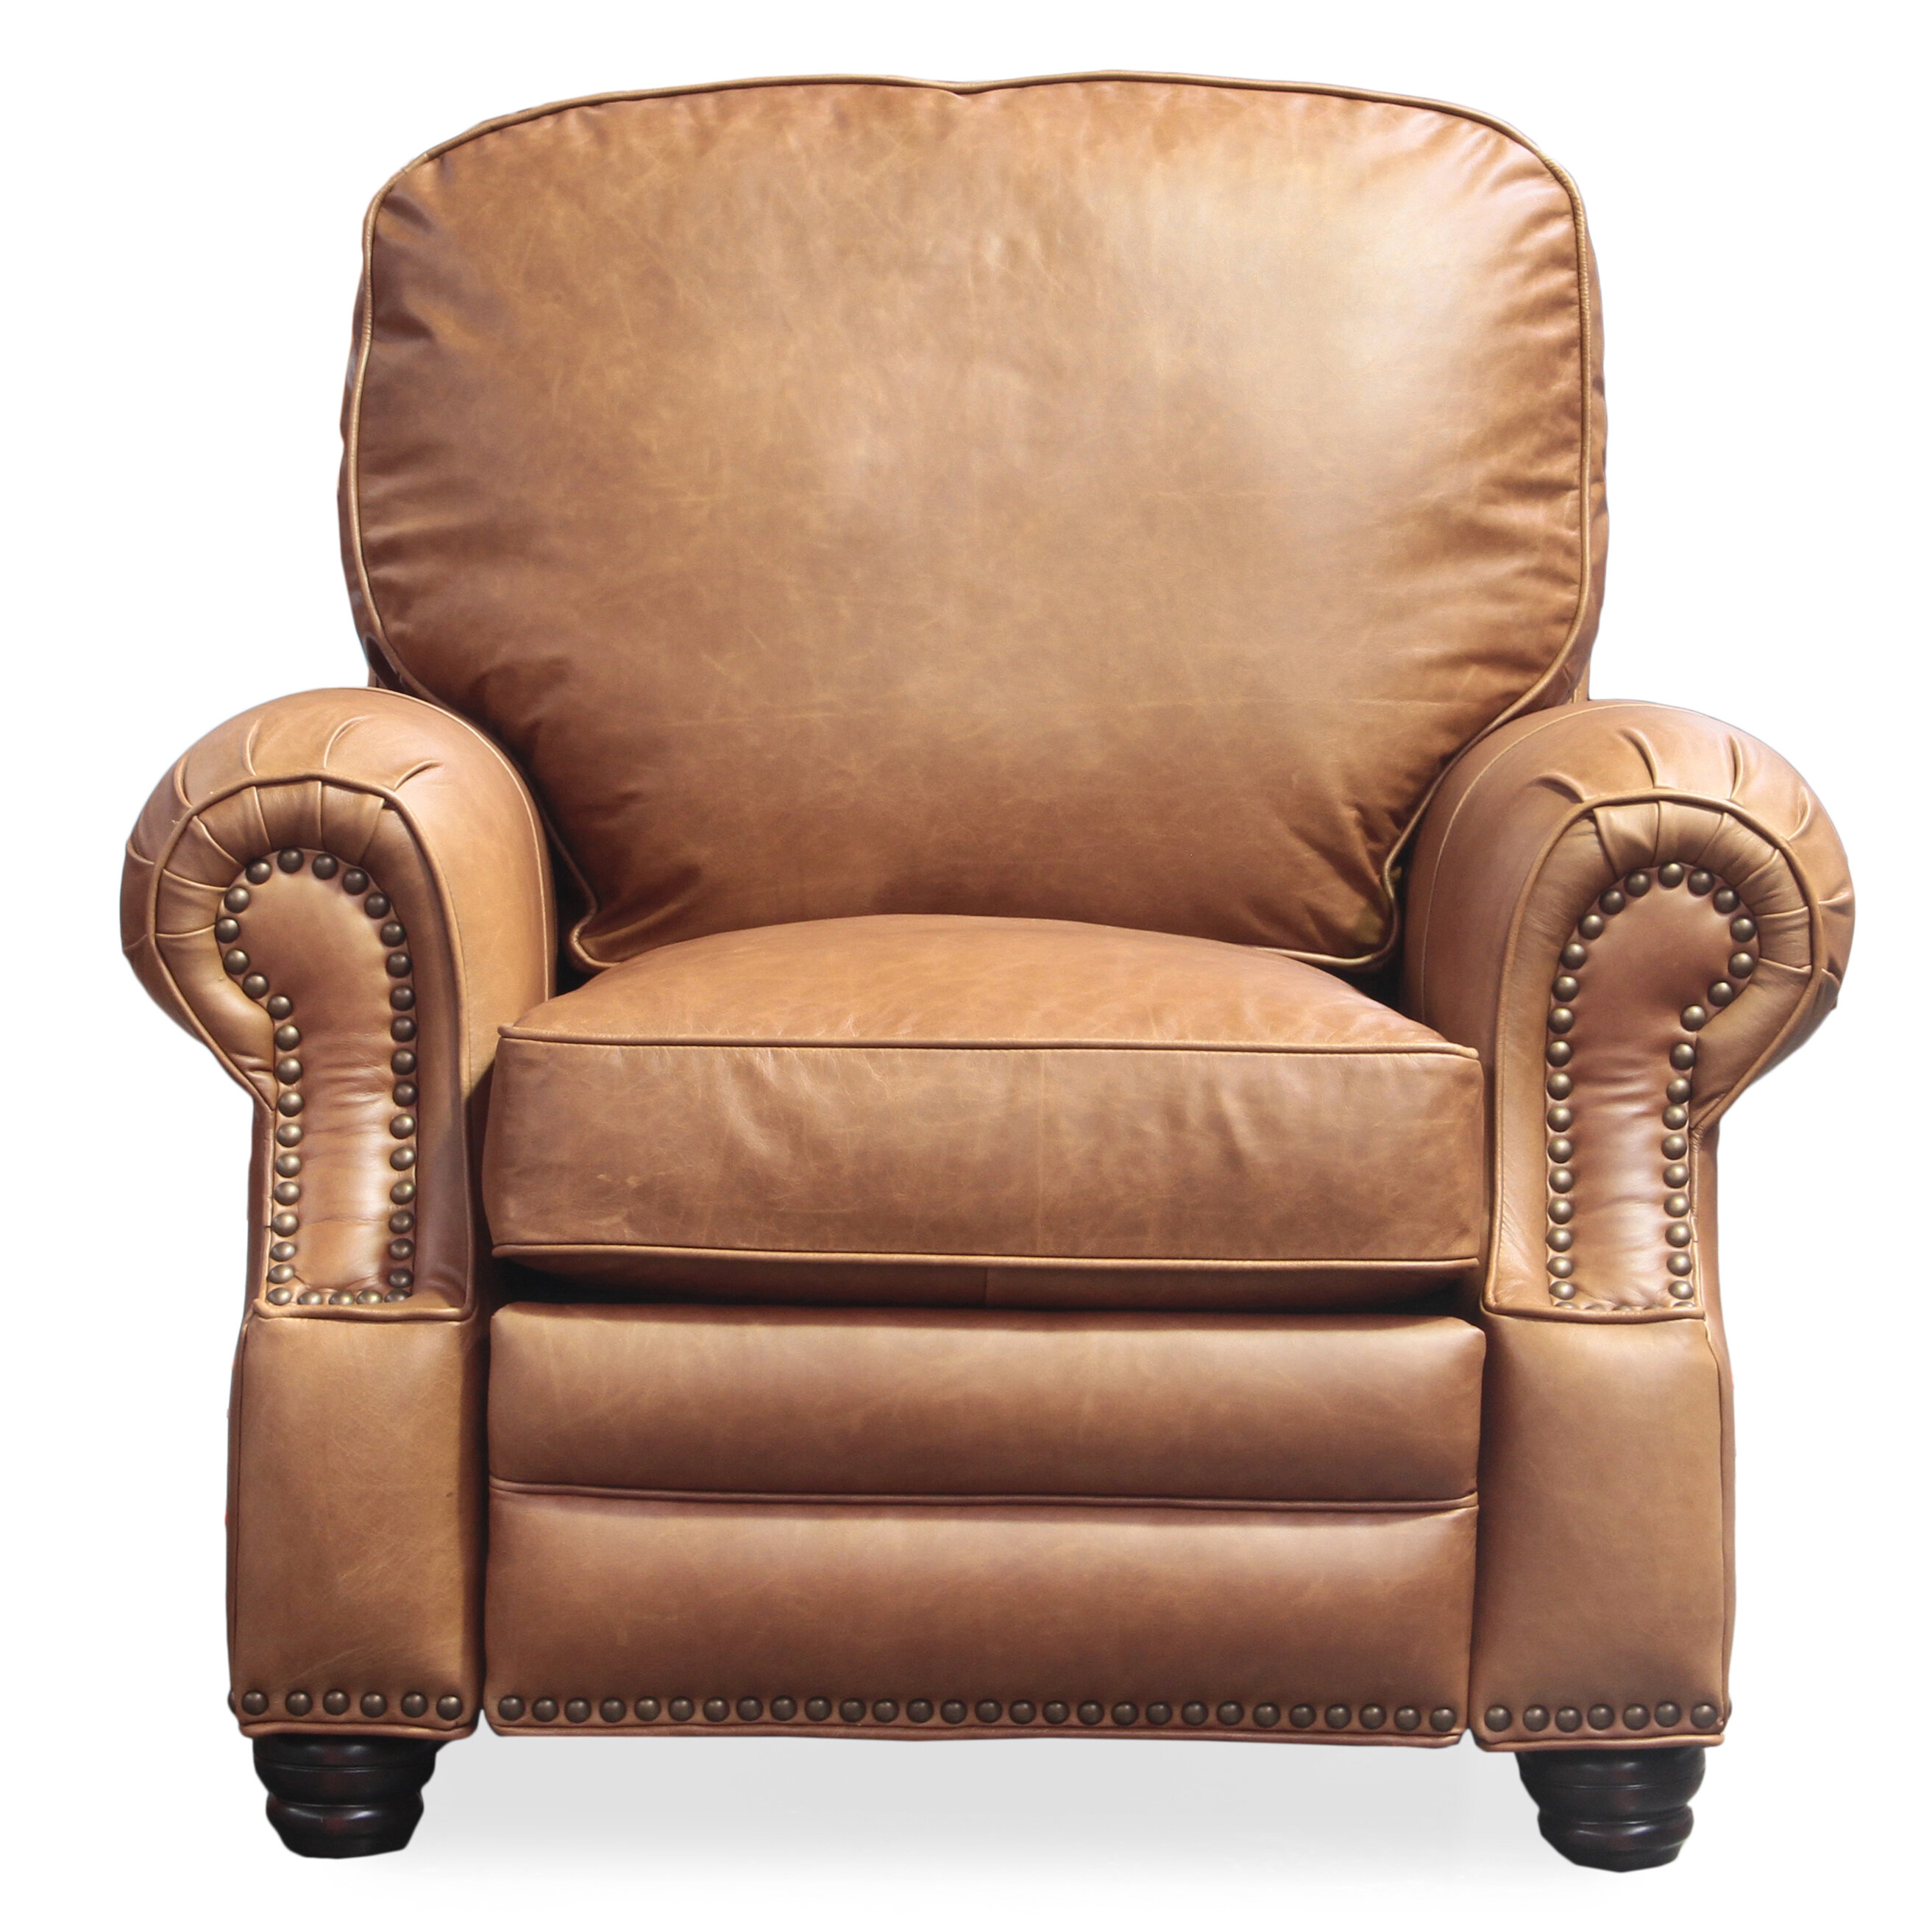 leather collections glenn rejuvenation catalog leathersaddle chair walnut recliner